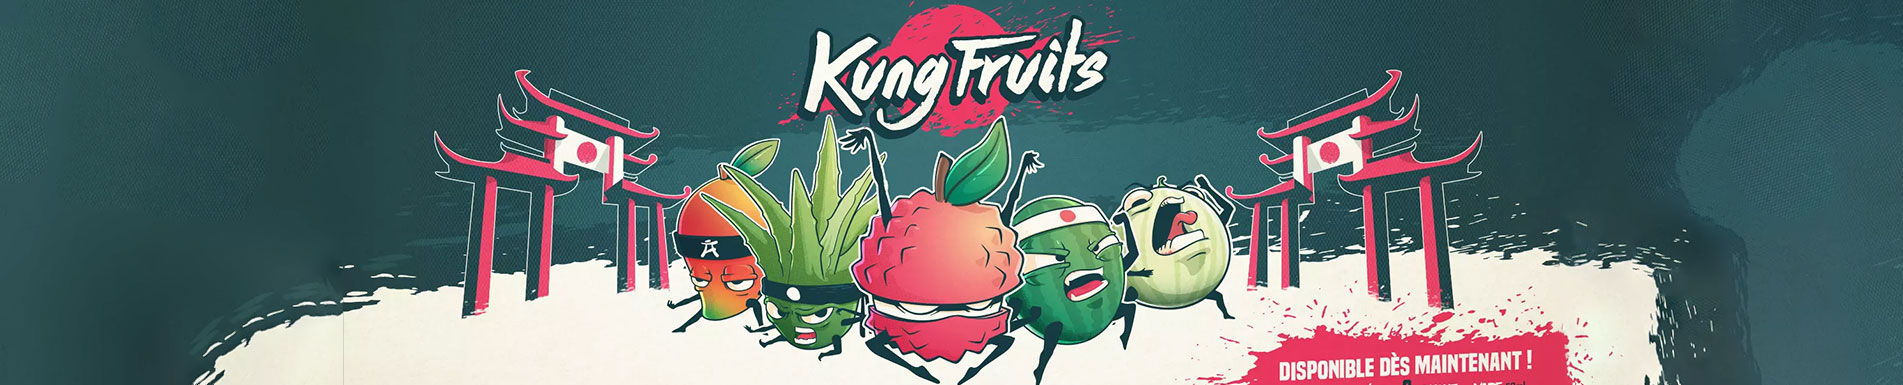 E-liquide Kung Fruits Mix'n'Vape par Cloud Vapor